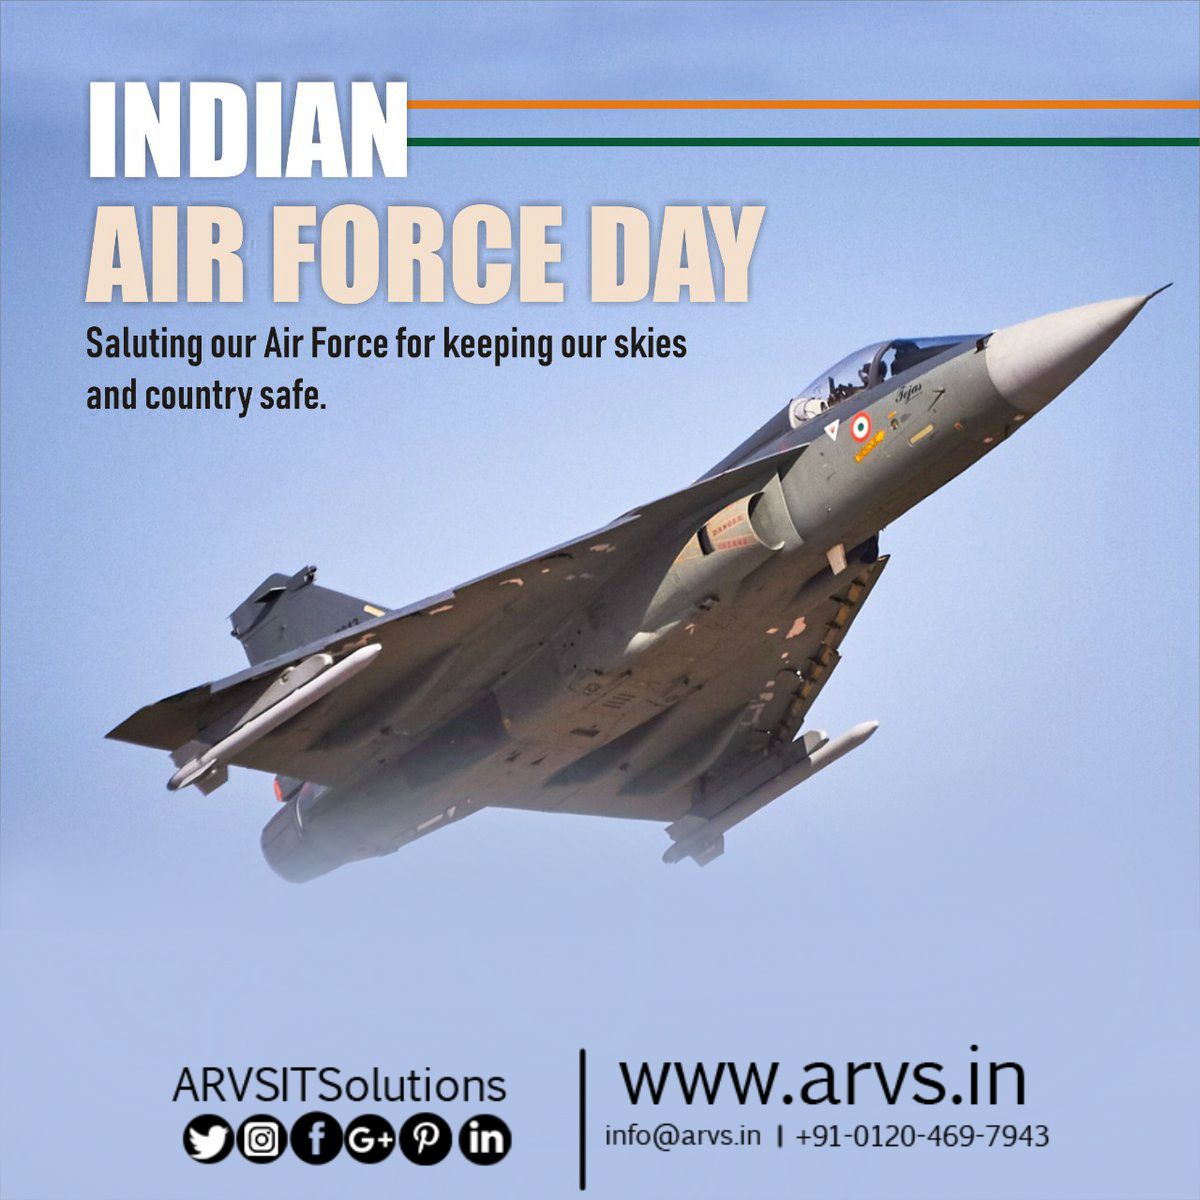 Saluting our IndianAirForce for keeping our skies and